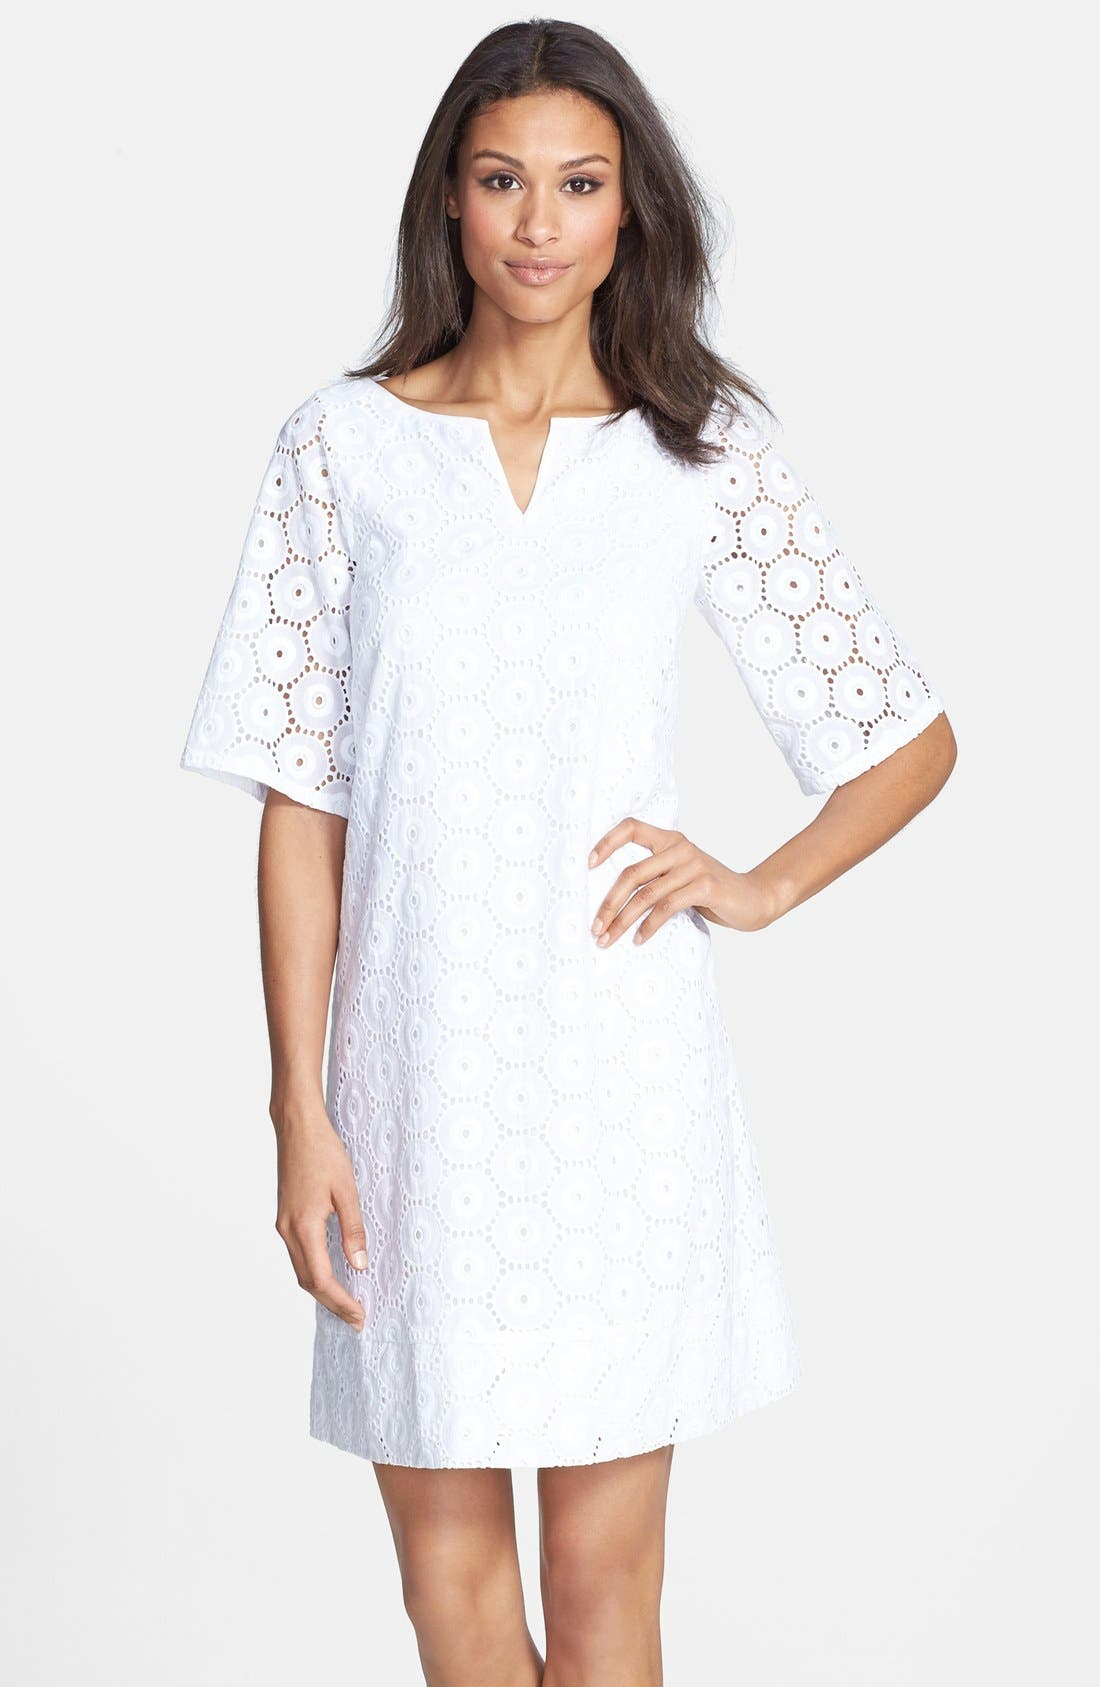 Alternate Image 1 Selected - Adrianna Papell Eyelet Shift Dress